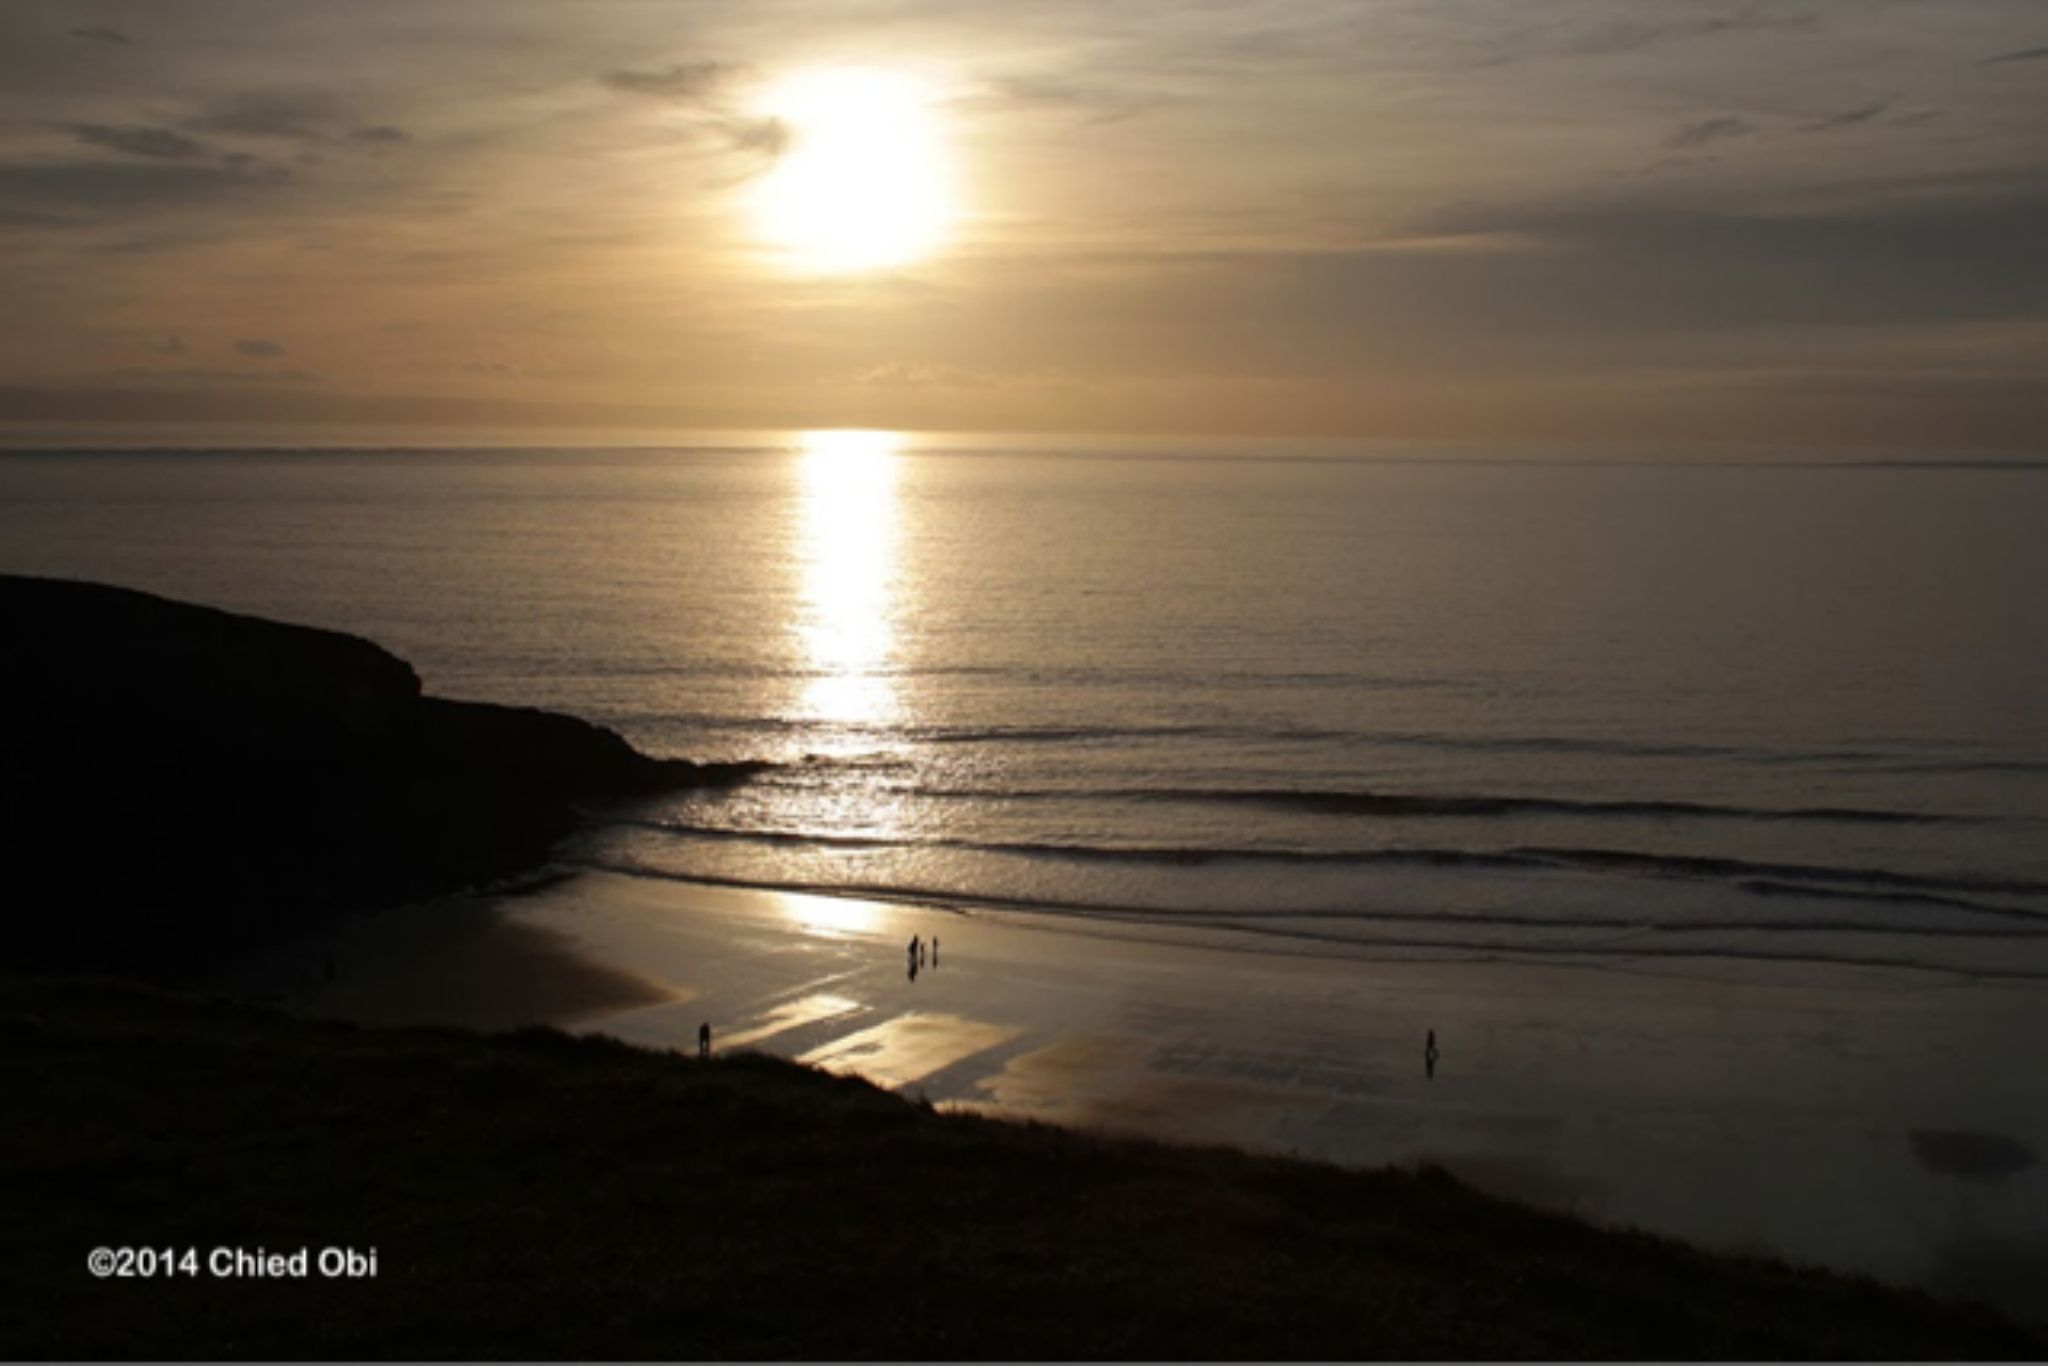 Ogmore on sea sunset by focalfocus